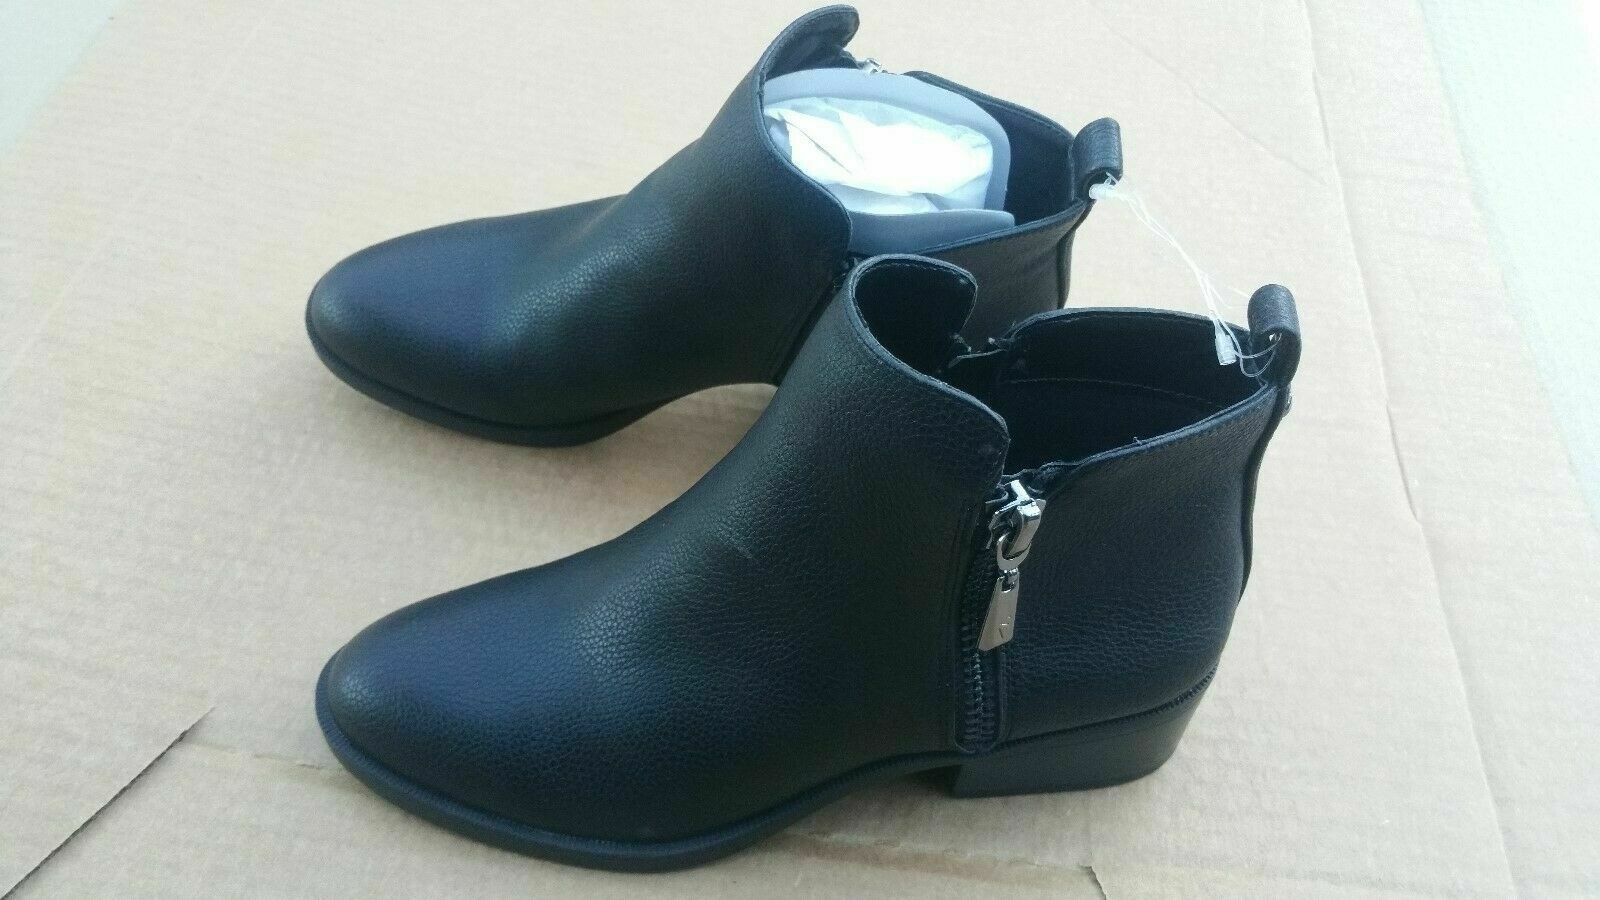 Primary image for Simple Vera Wang Black Ankle Boot SVROCKY Low Heel - Black Size 7